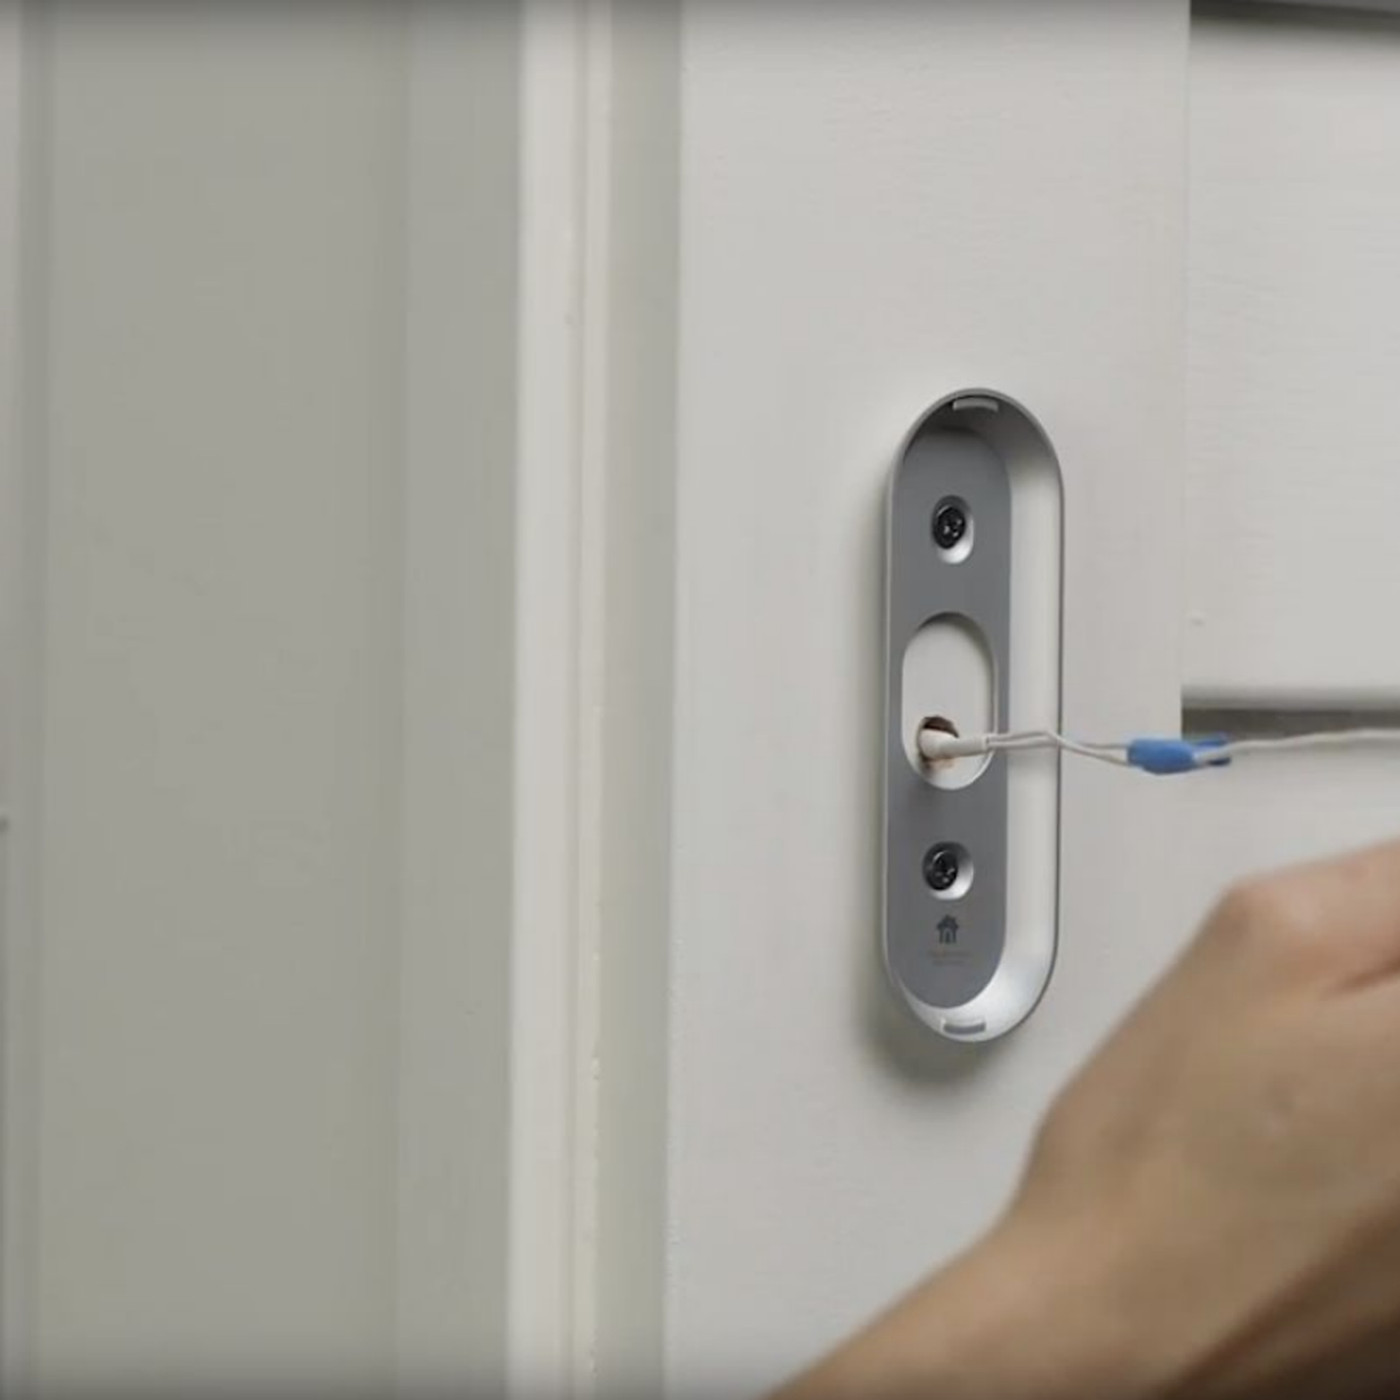 Nest Doesn T Make A Battery Powered Doorbell So Now Google Sells A Power Cable That Needs To Be Drilled Through The Wall The Verge